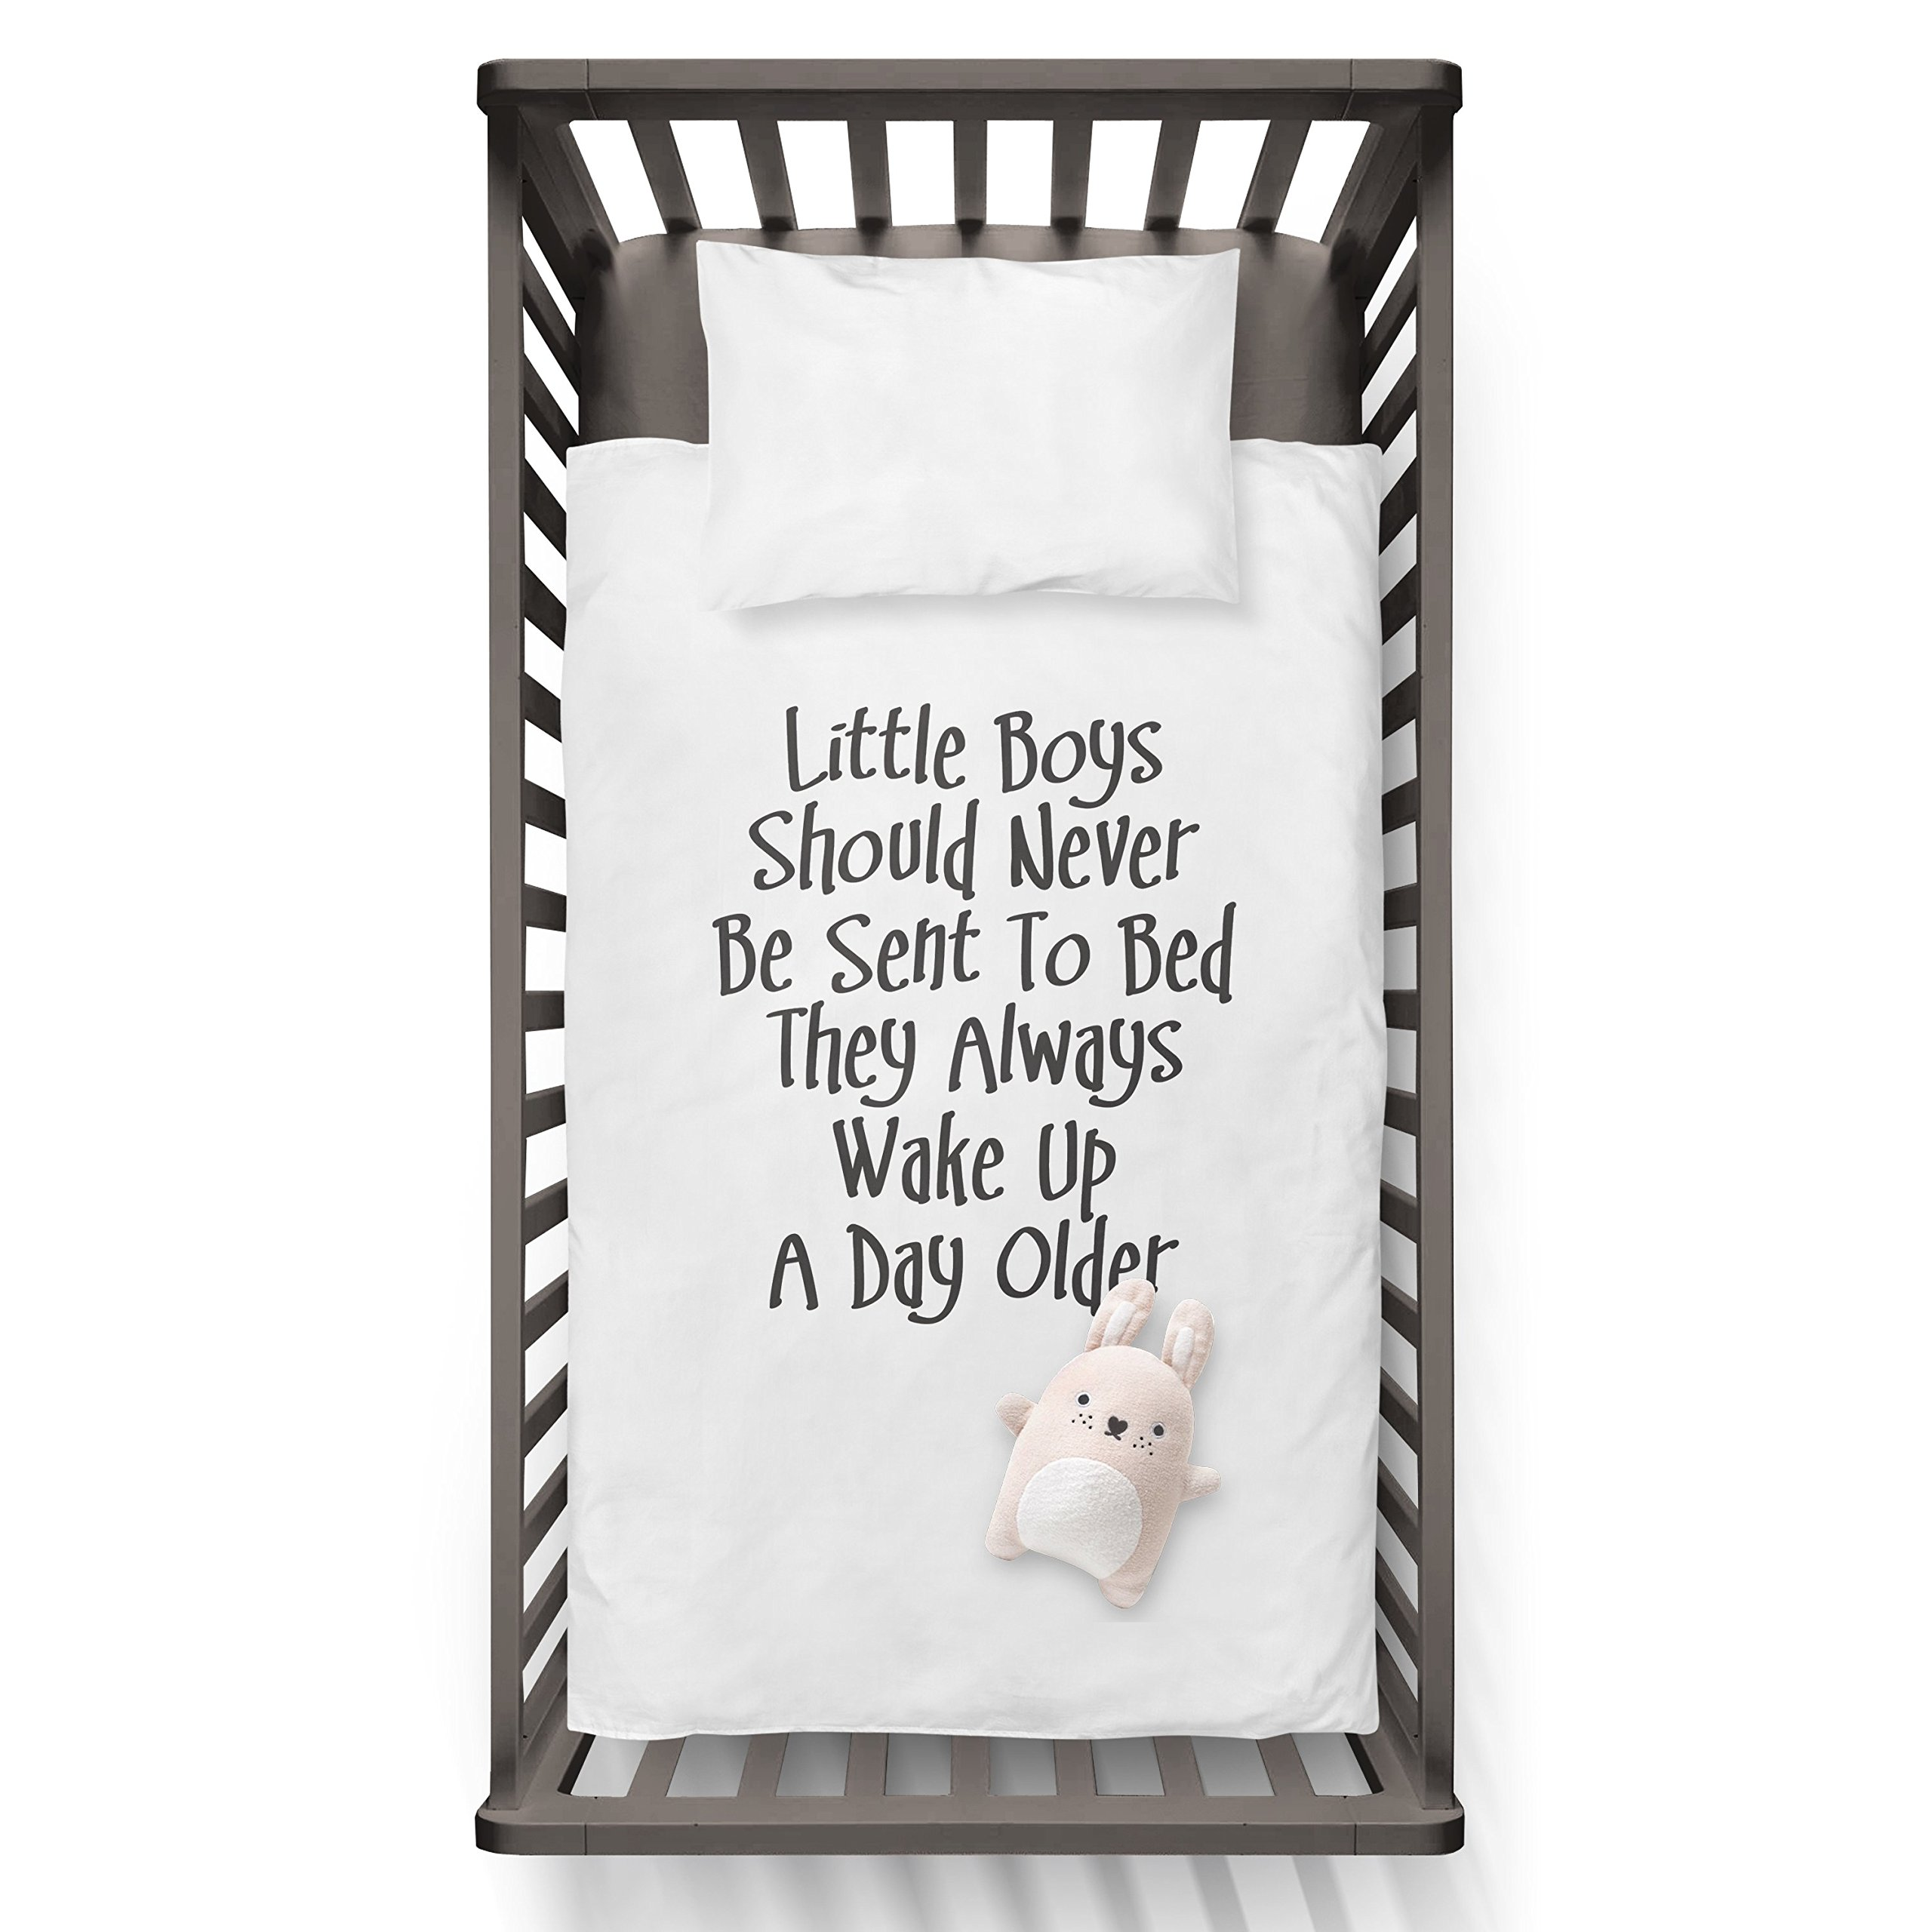 Little Boys Should Never Be To Sent To Bed They Always Wake Up A Day Older Funny Humor Hip Baby Duvet /Pillow set,Toddler Duvet,Oeko-Tex,Personalized duvet and pillow,Oraganic,gift